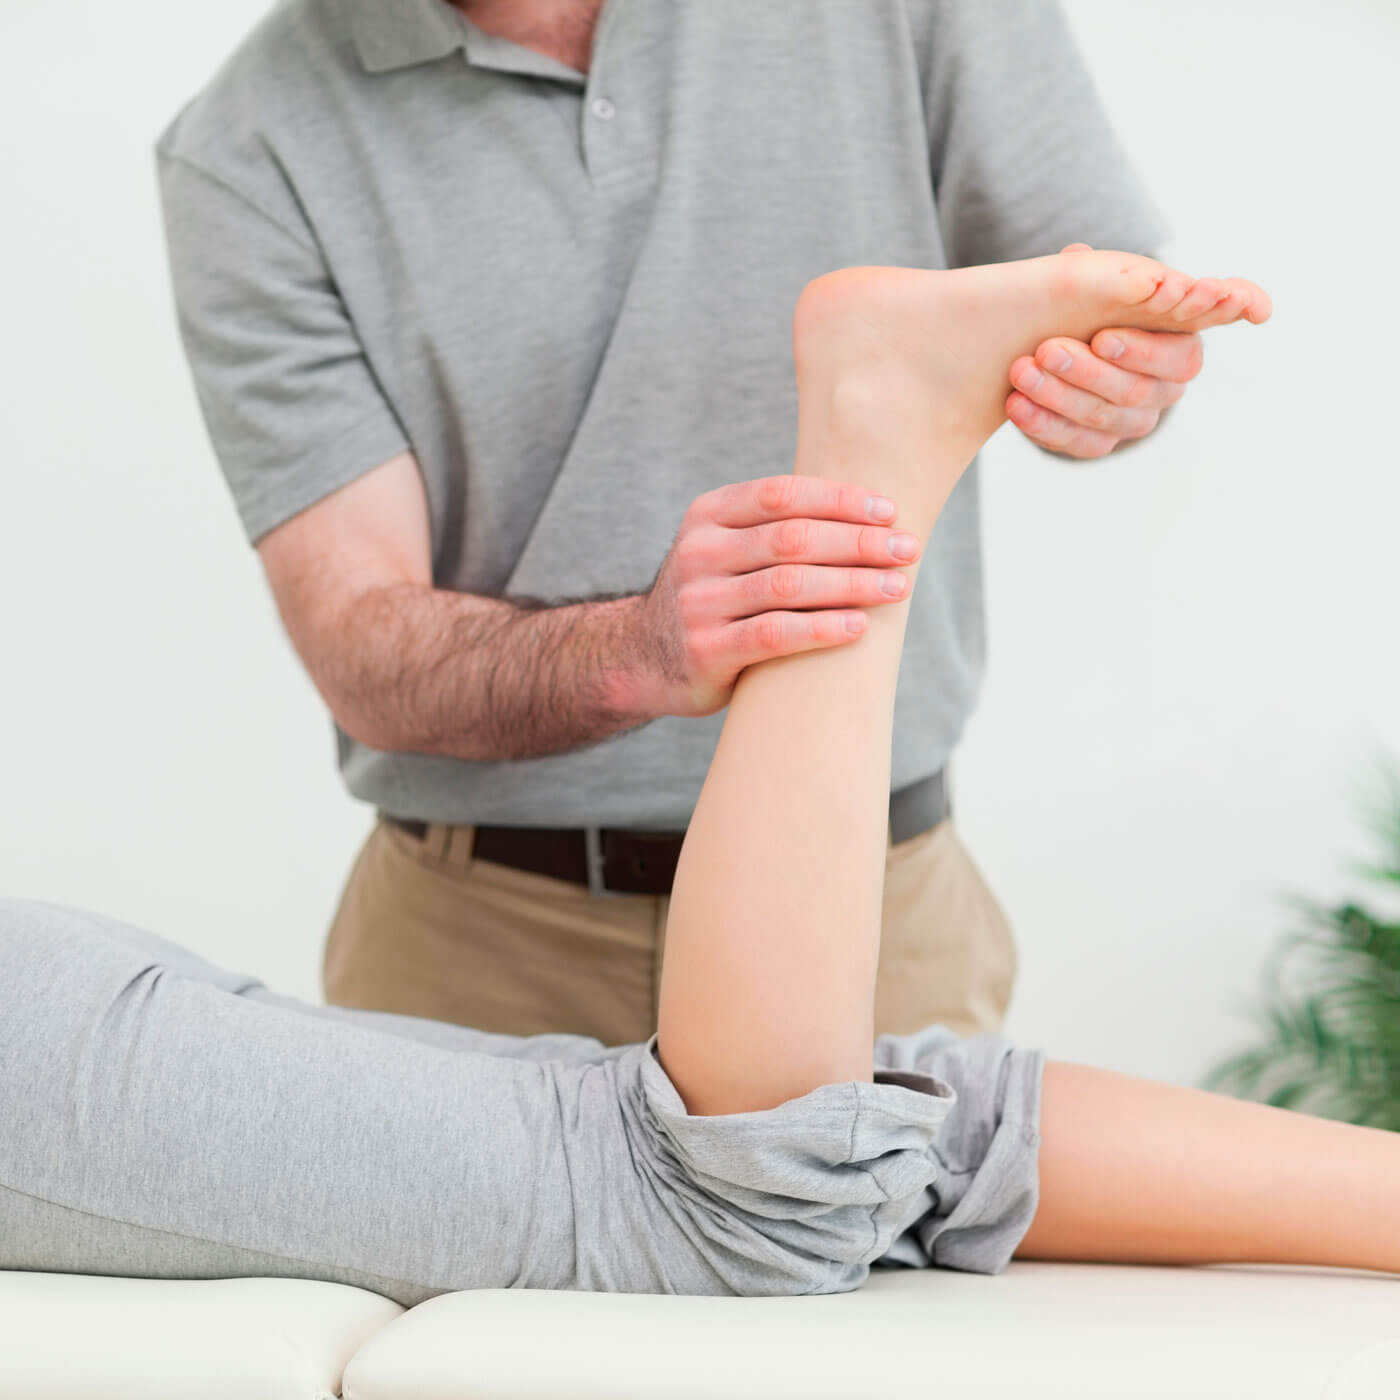 Essential Chiropractic and Healthcare Clinic - Podiatry Conditions Podiatrist Relief from Achilles Tendinitis